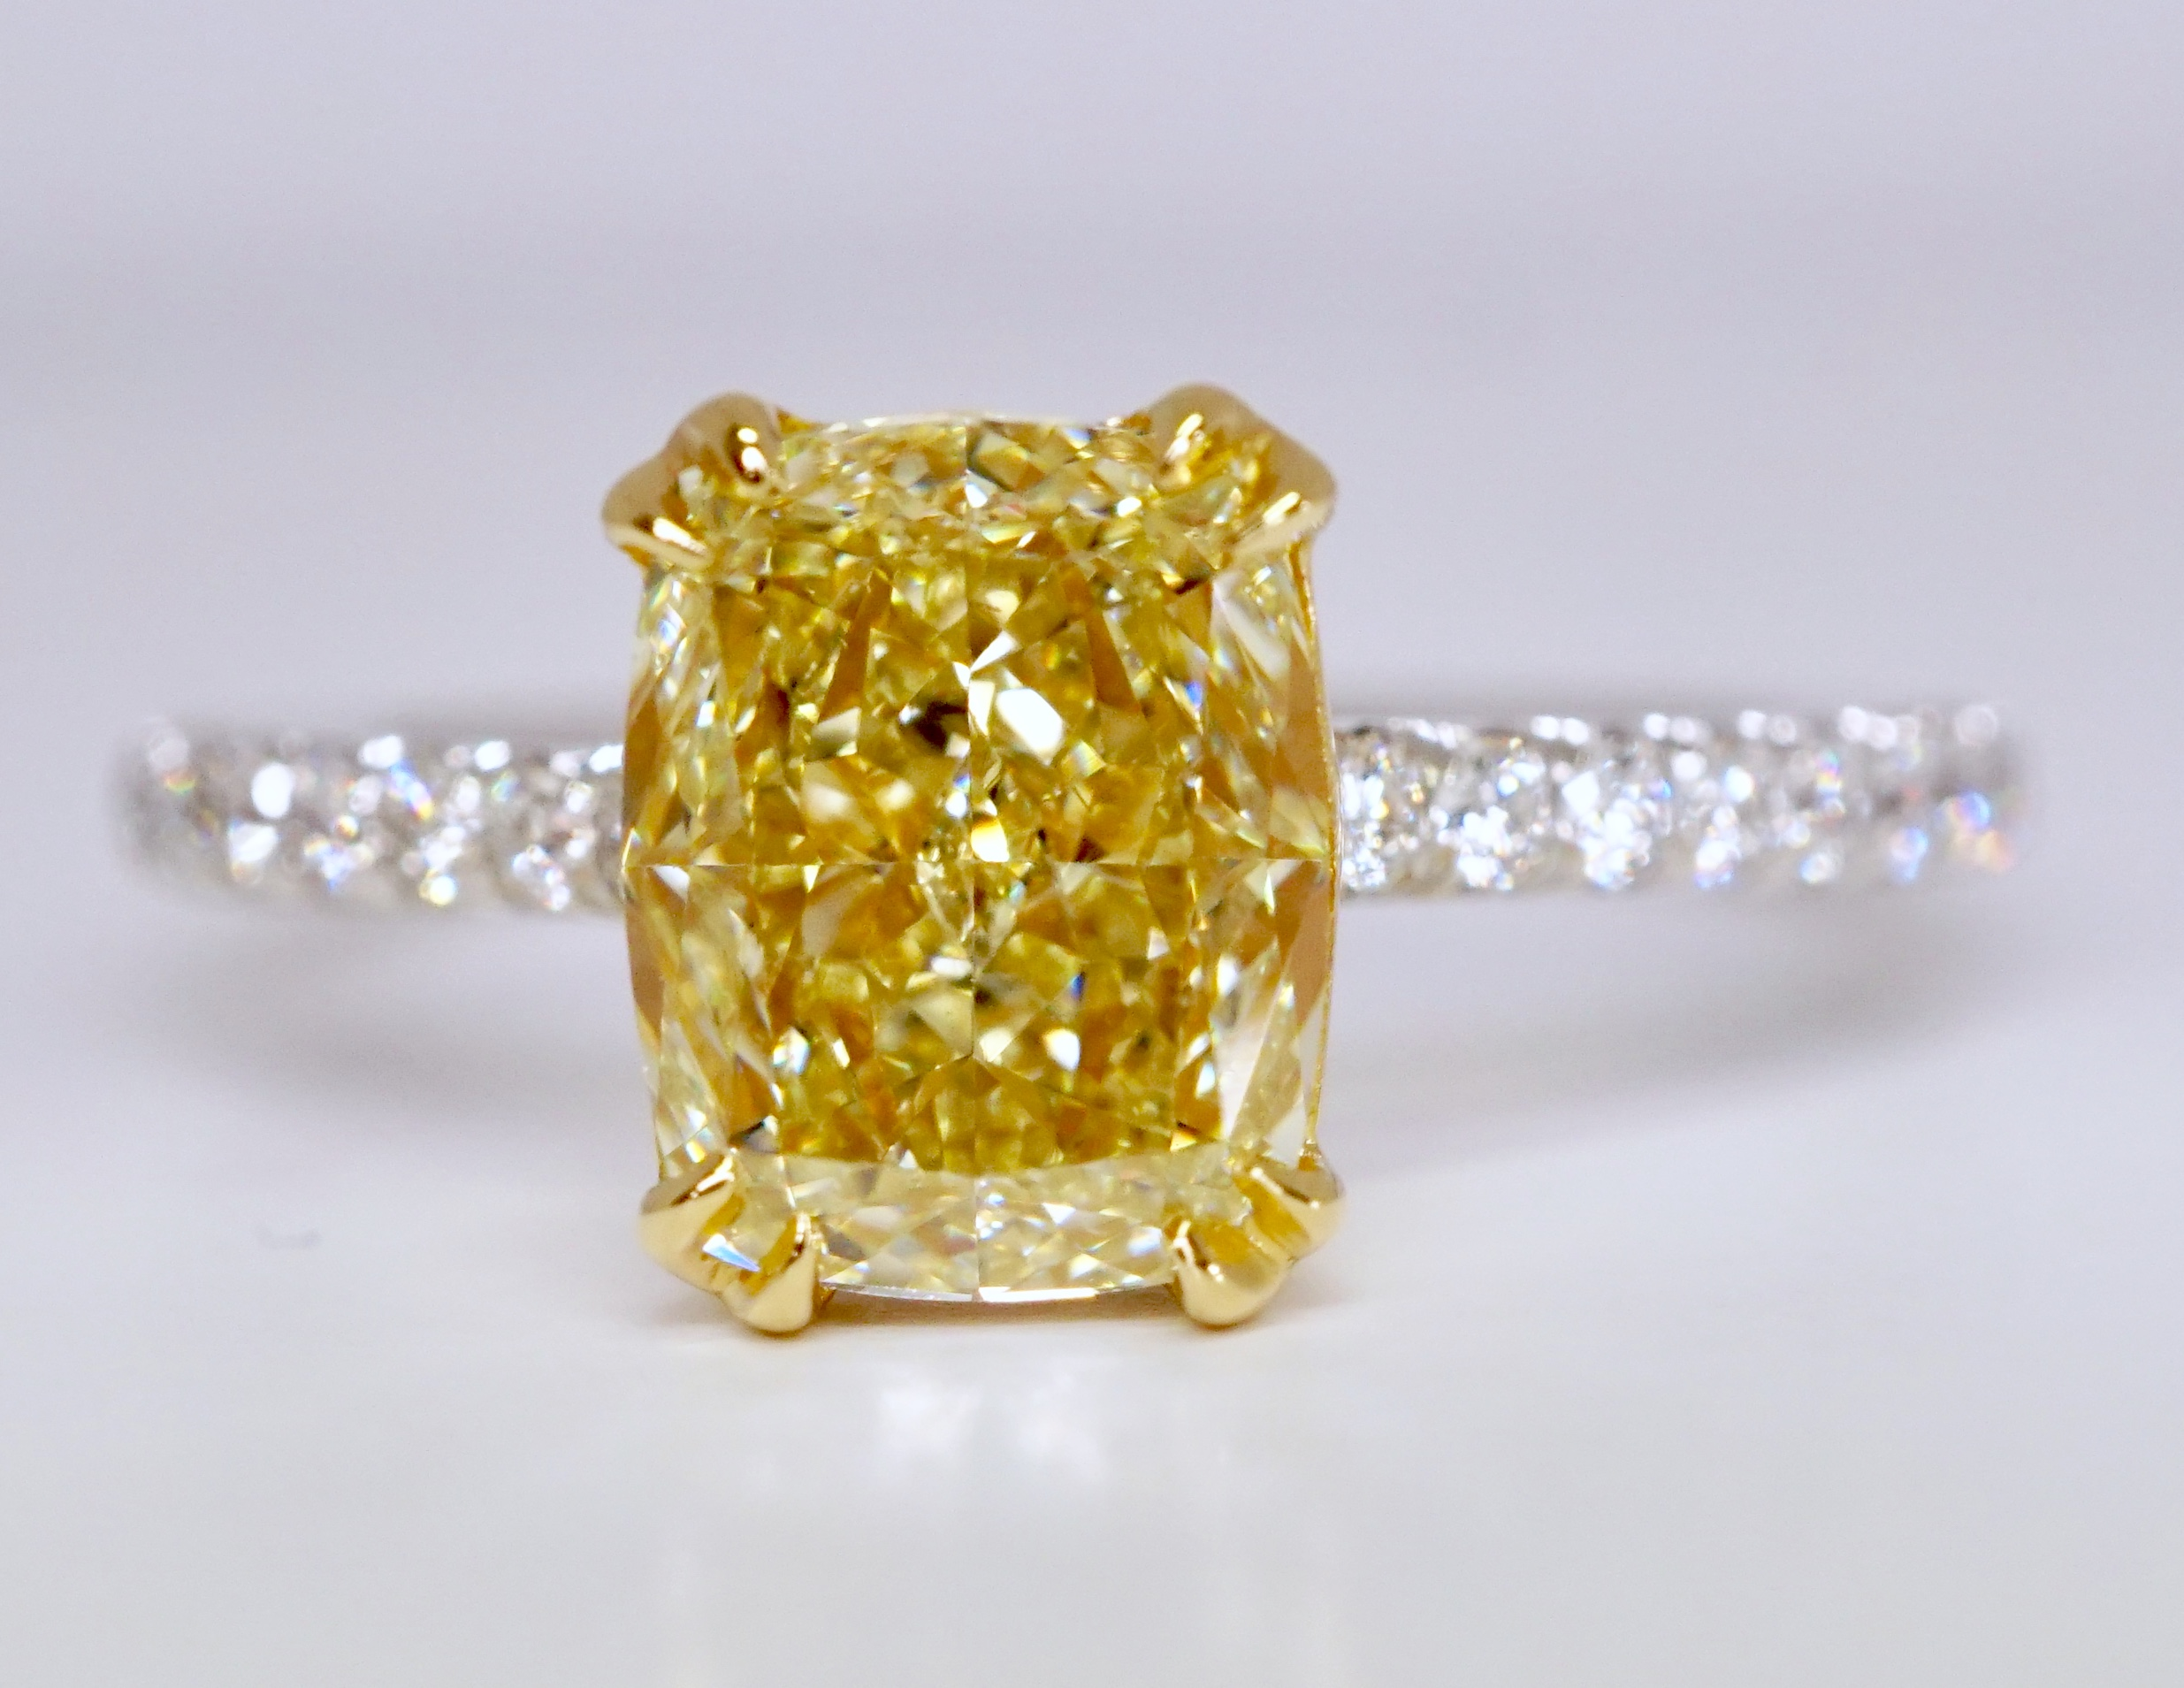 Platinum Cushion Cut Yellow Diamond Engagement Ring Wedding Ring Bridal Ring Promise Ring Anniversary Ring